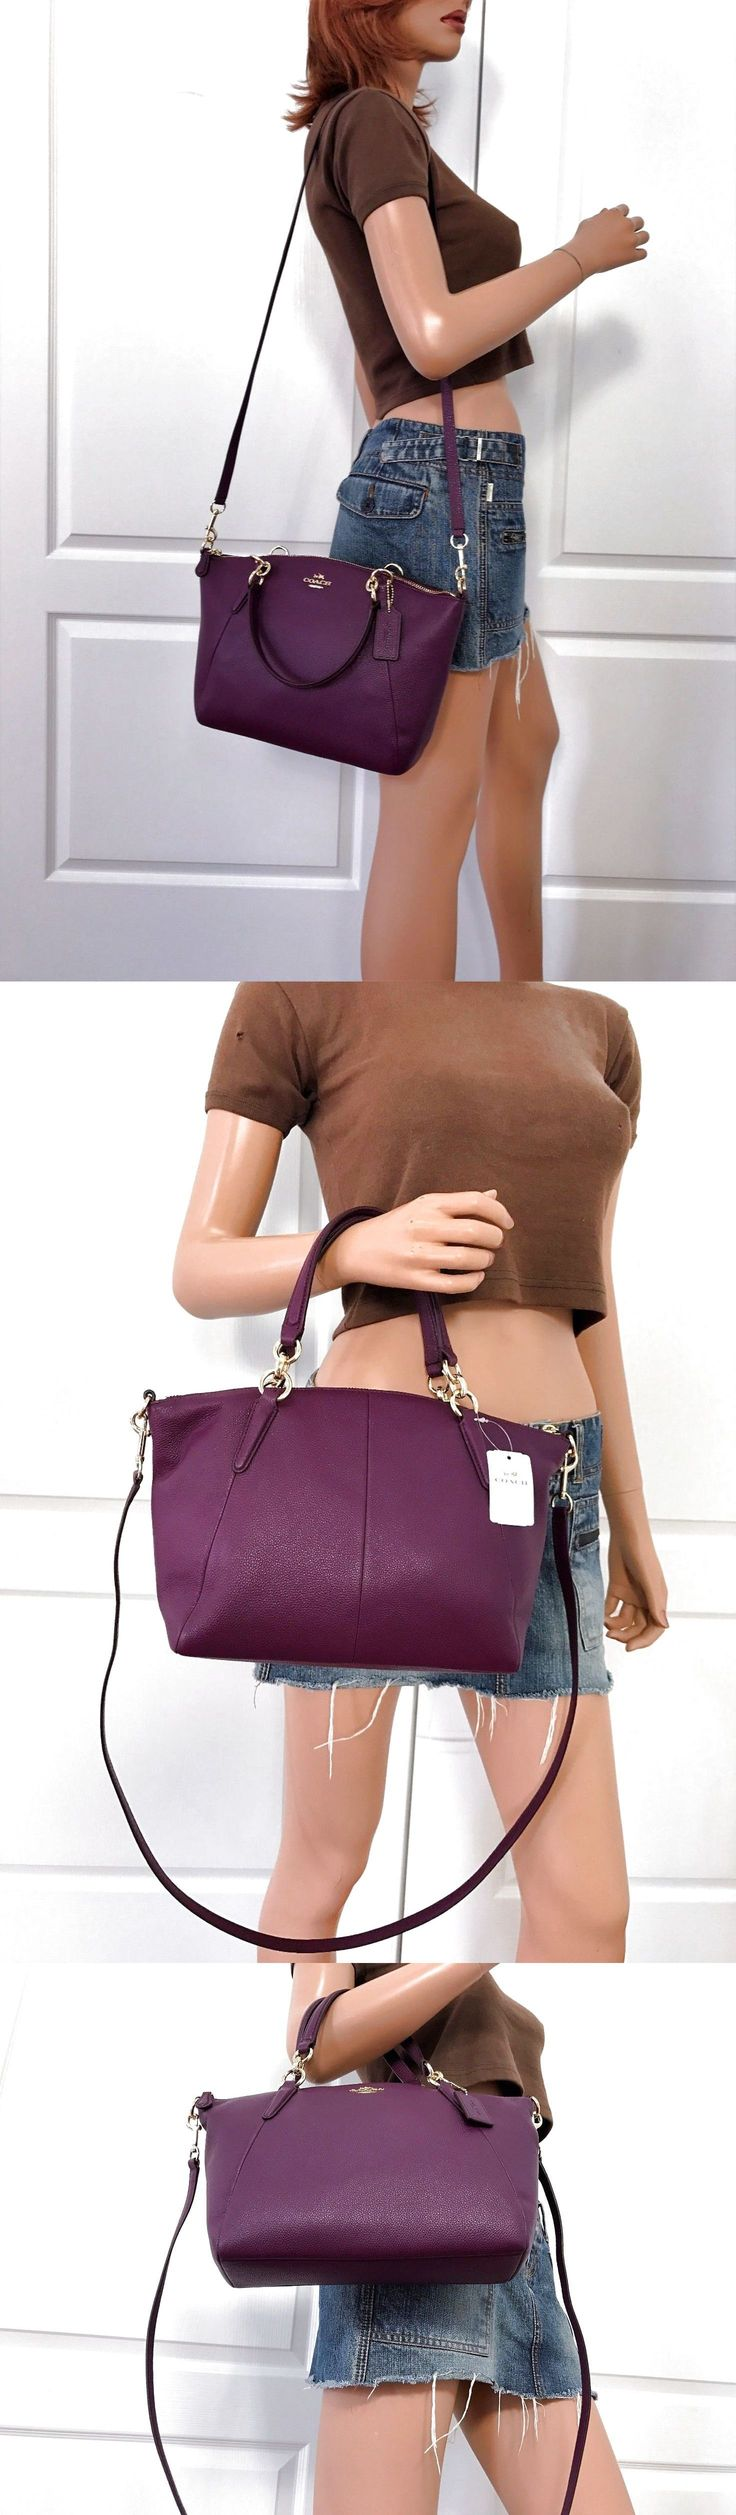 NWT COACH PURPLE PEBBLED LEATHER SMALL SHOULDER SATCHEL CROSSBODY  BAG PURSE $159.0